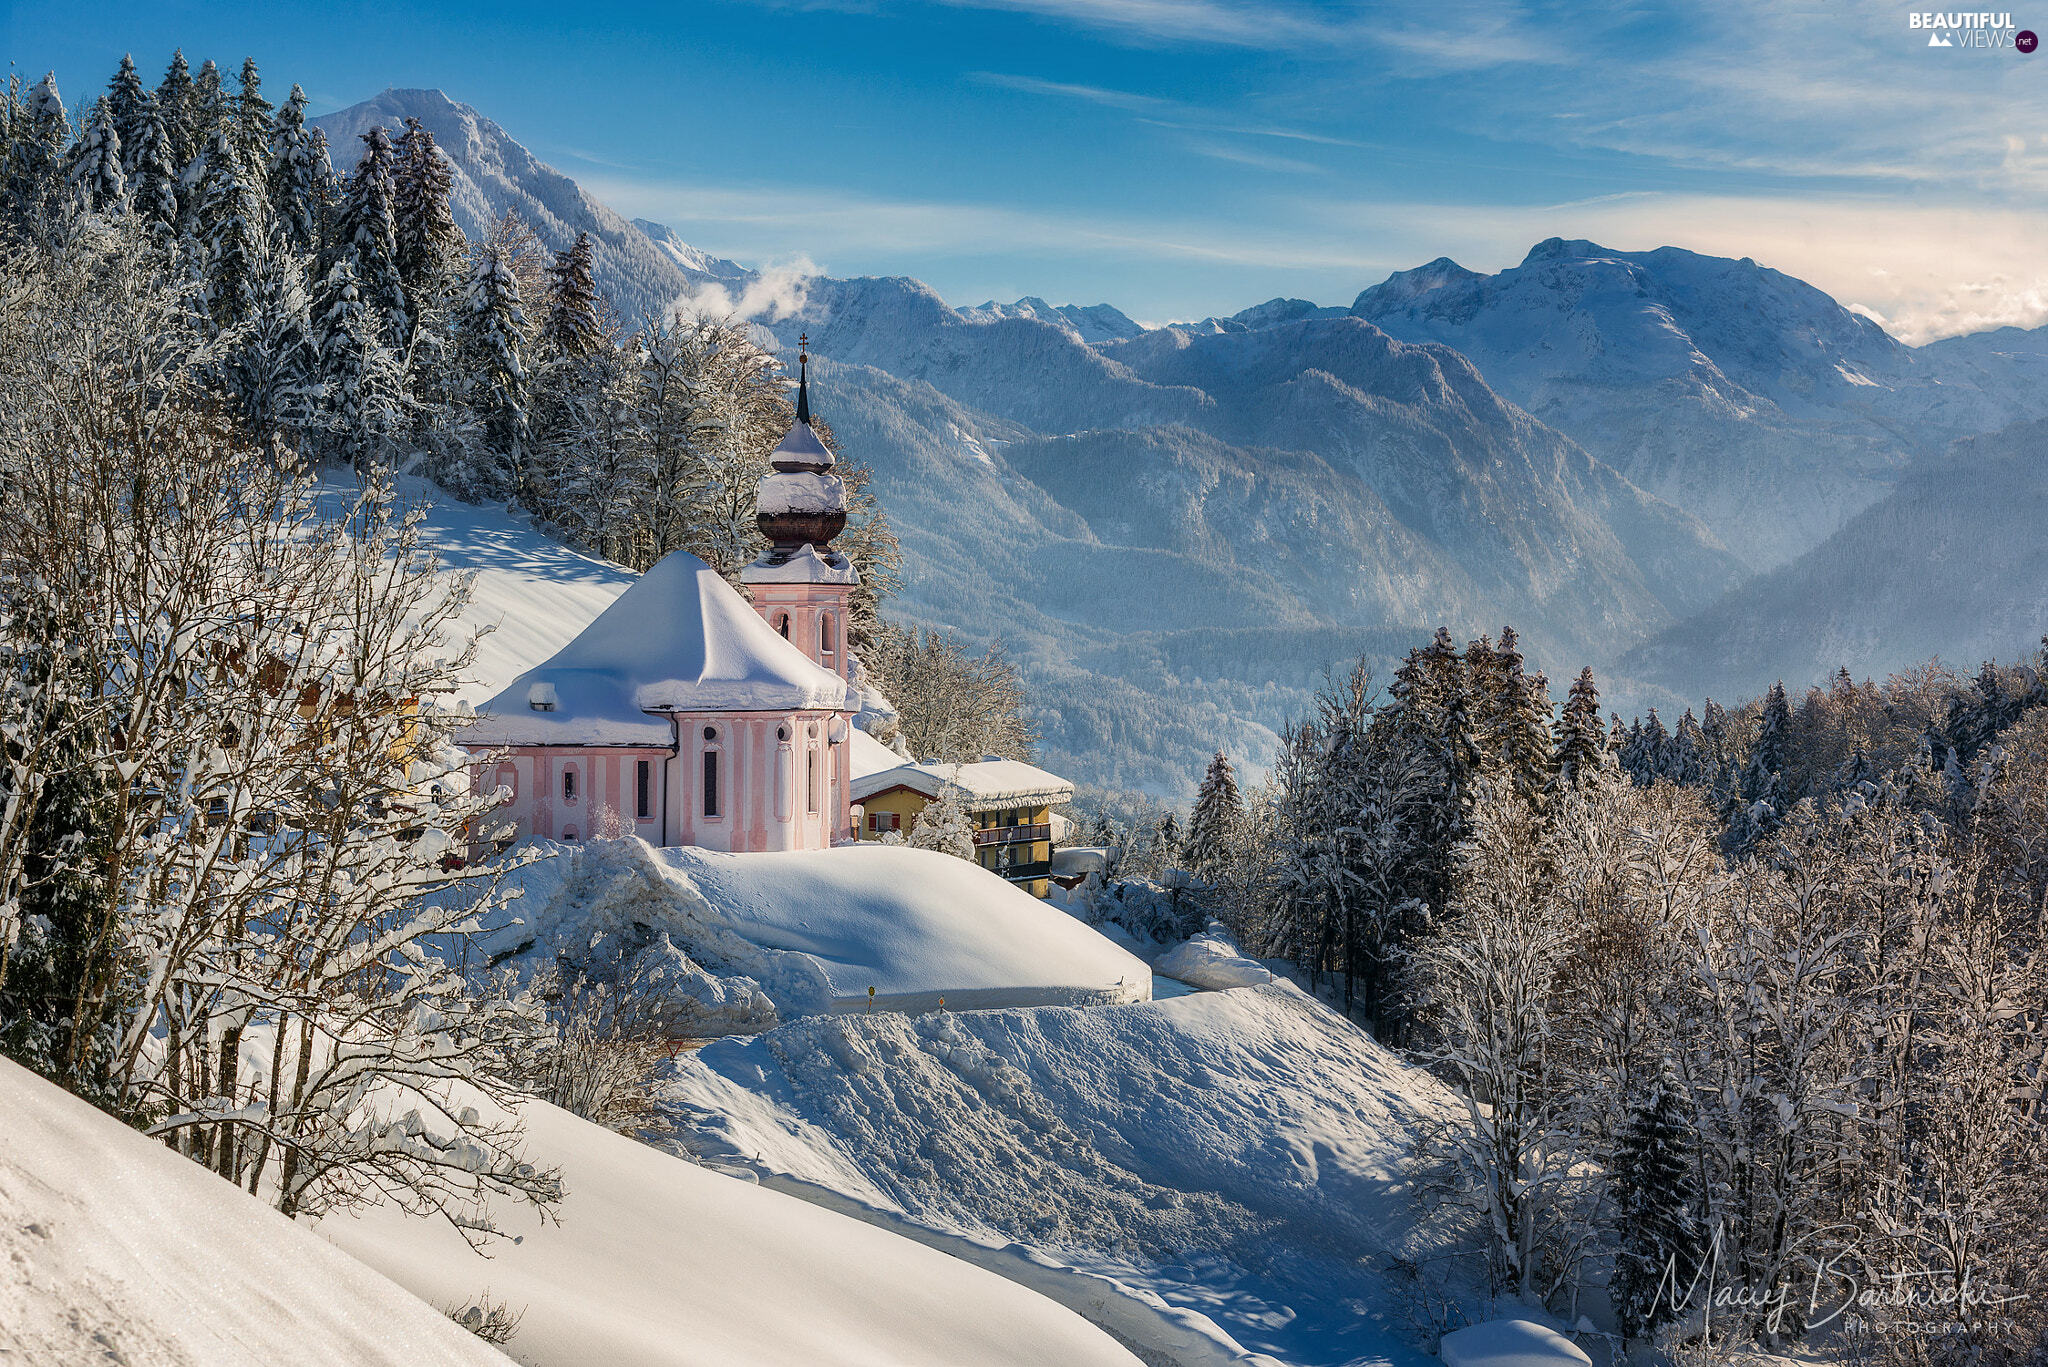 Sanctuary of Maria Gern, Salzburg Slate Alps, trees, Bavaria, viewes, Mountains, Church, Germany, Berchtesgaden, winter